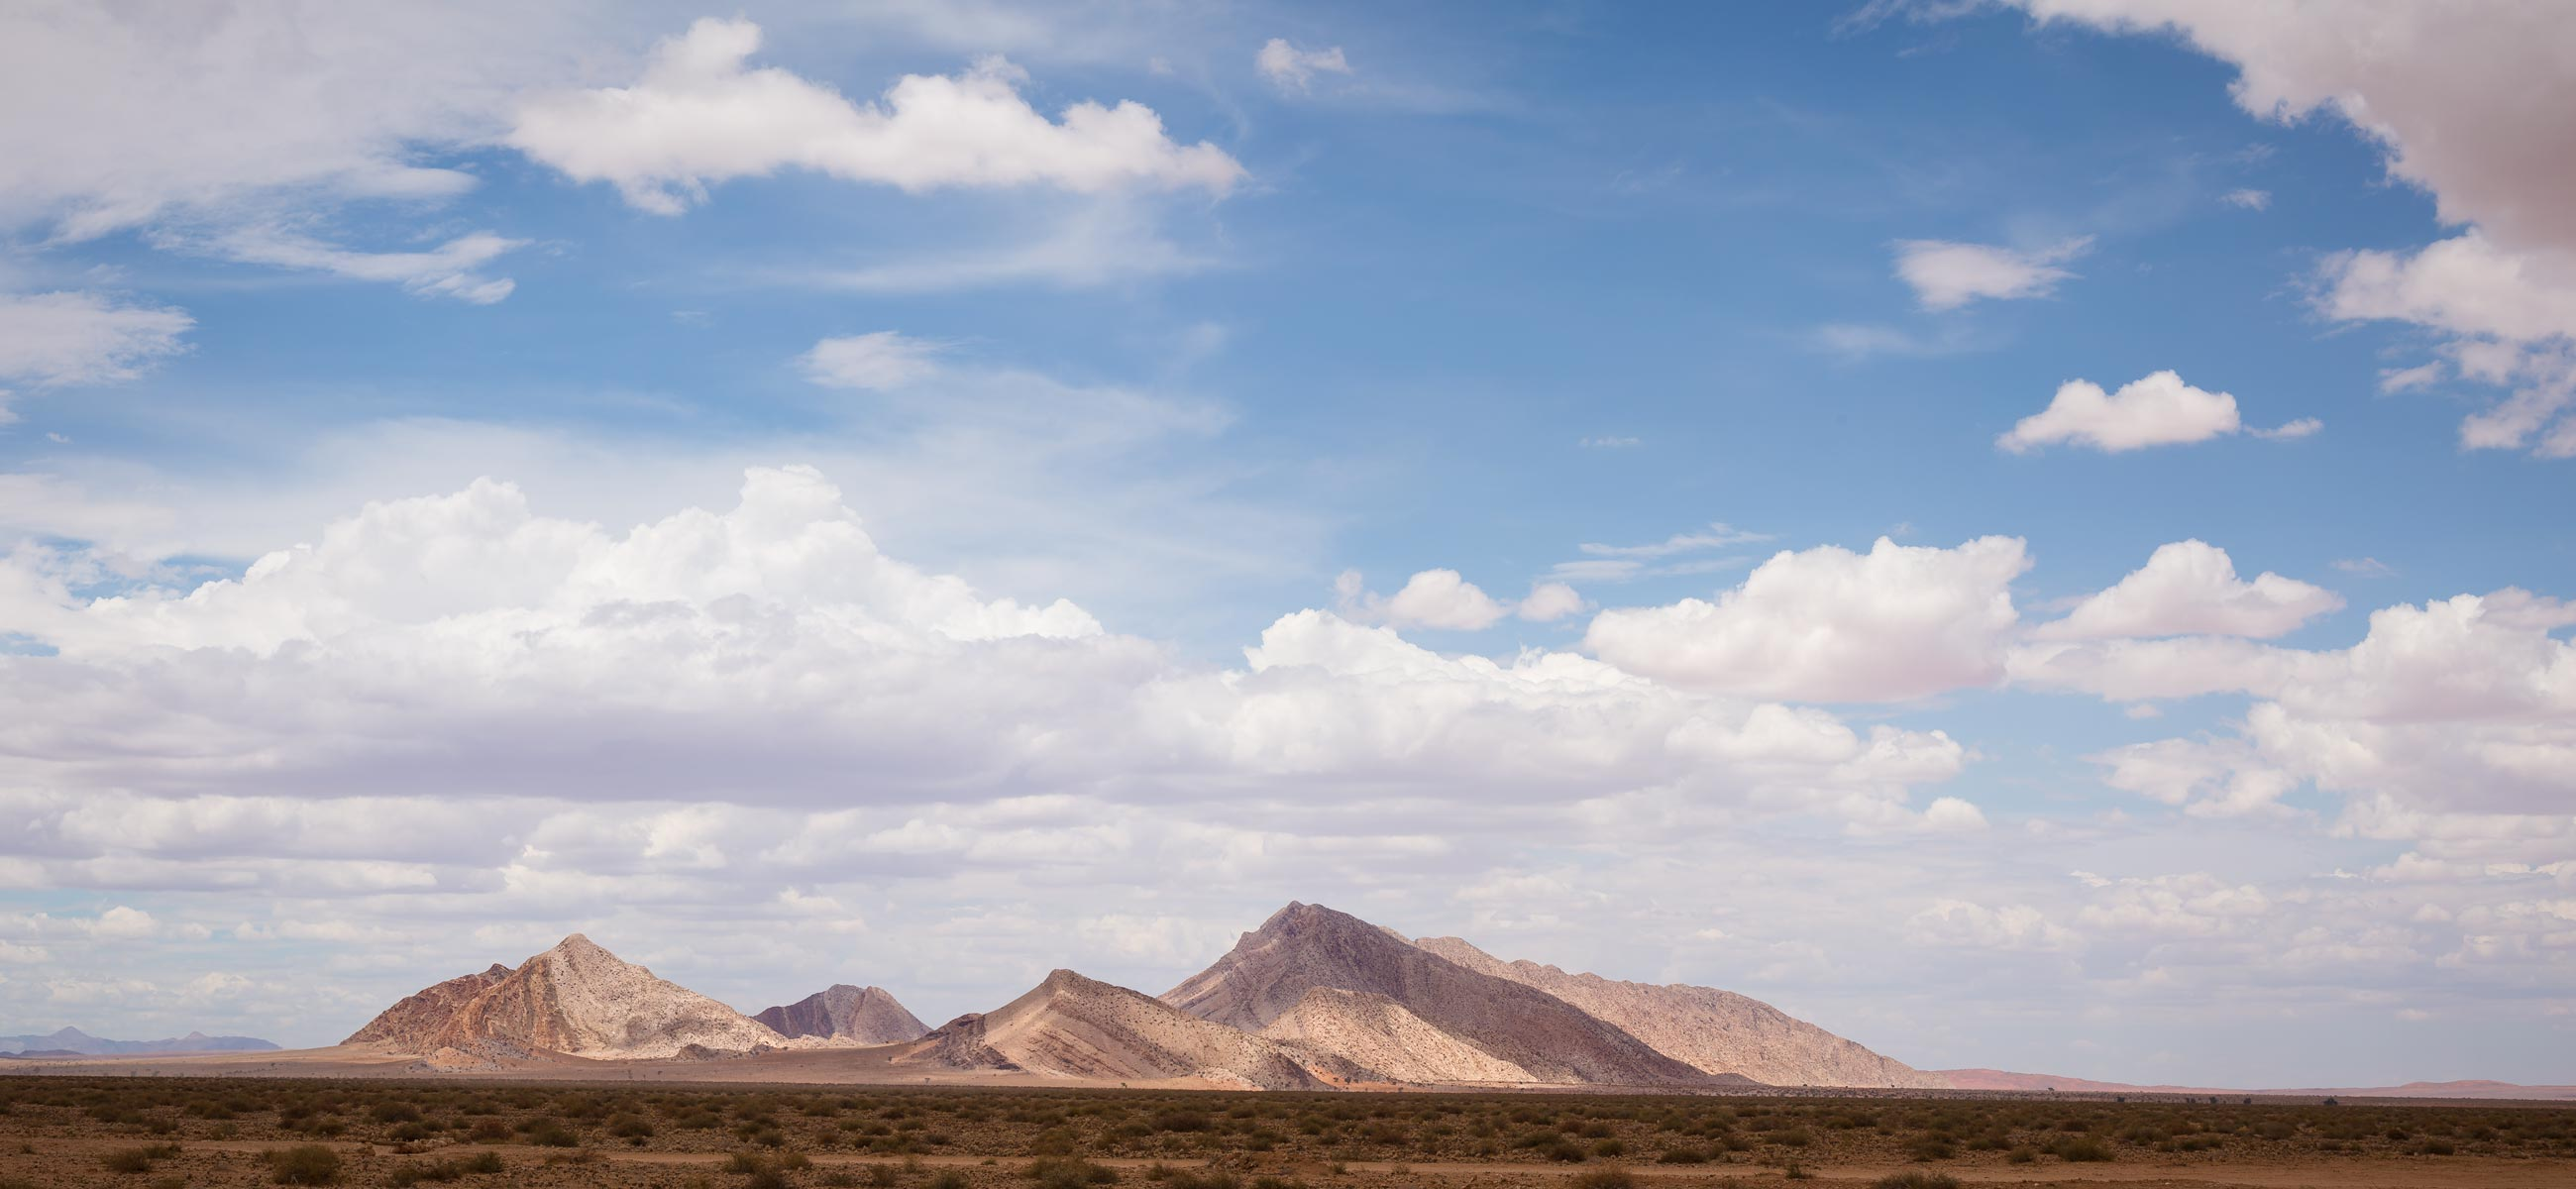 mountain rising from the flat eart desert in namibia with blue sky with clouds photo expedition